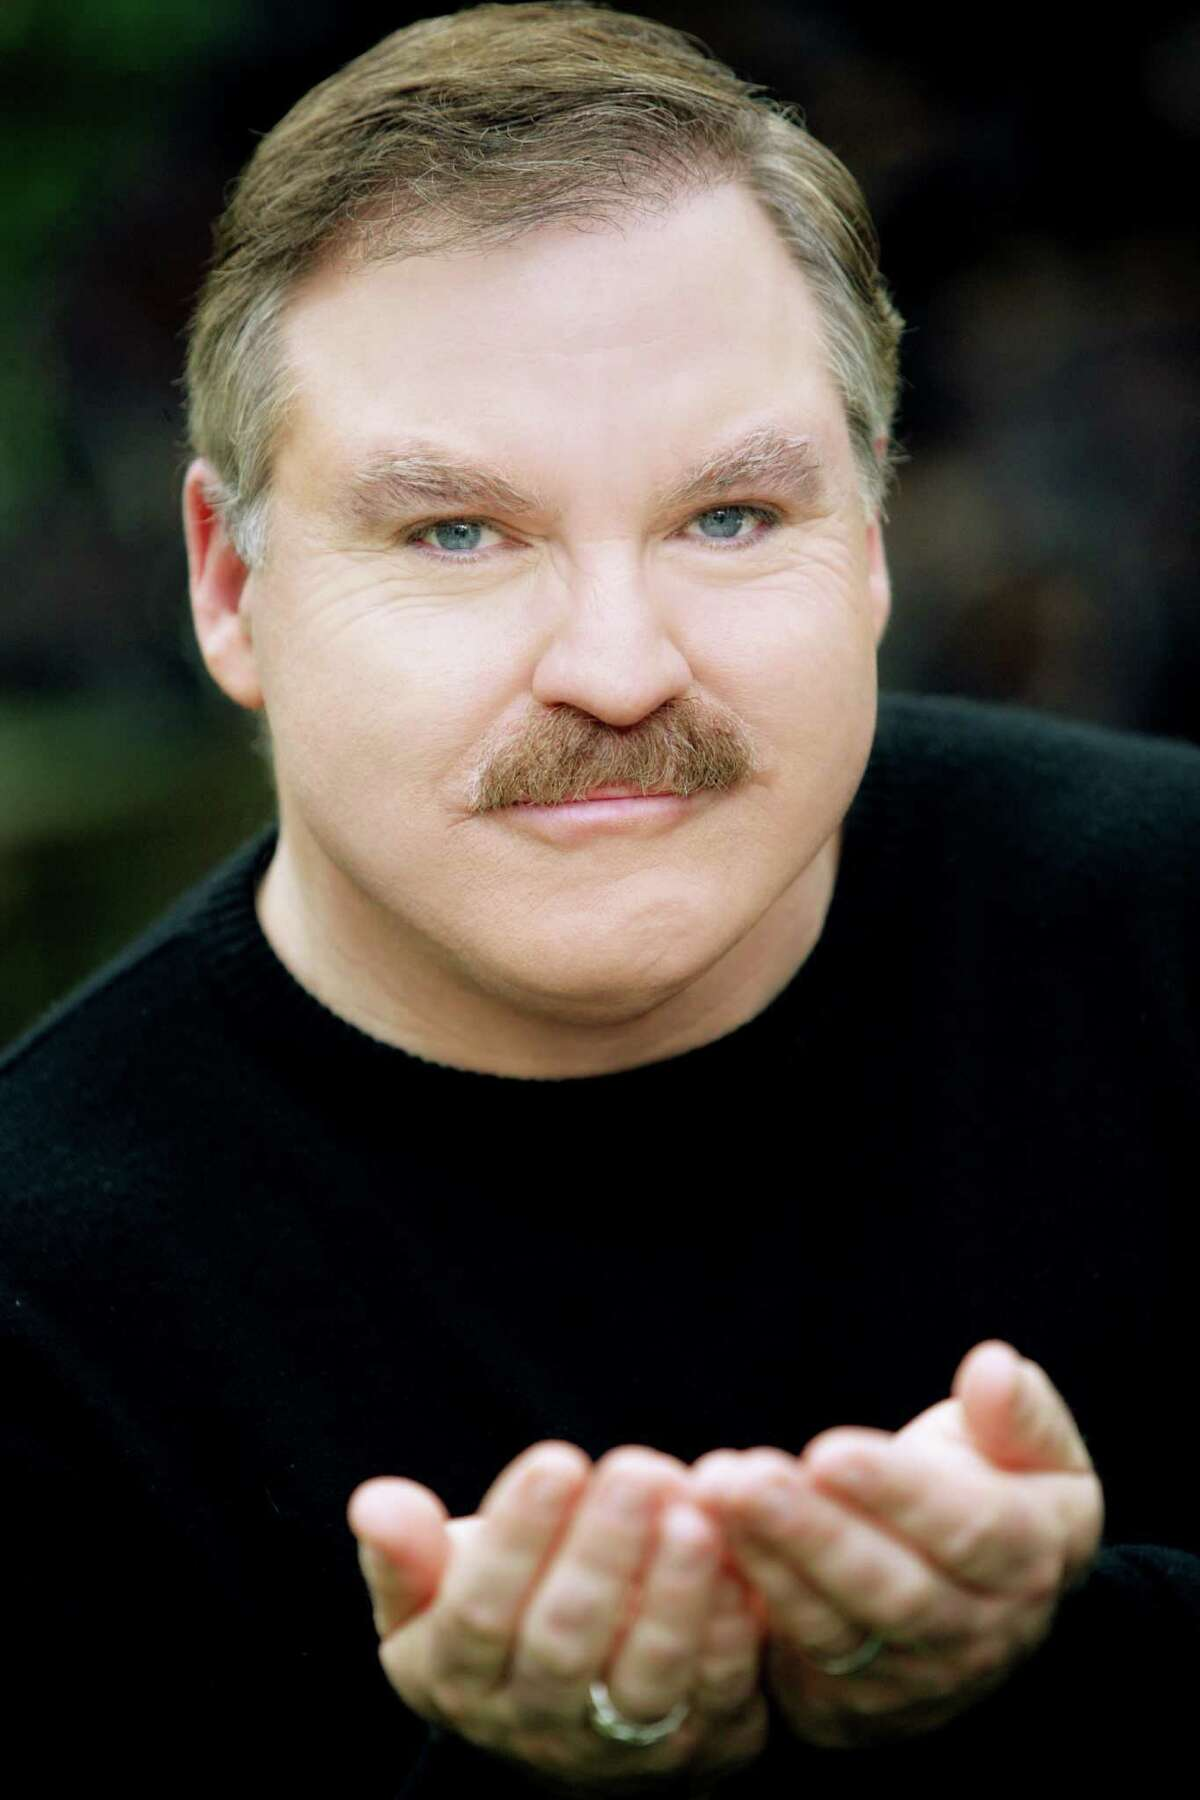 California-based medium James Van Praagh will be at the Ridgefield (Conn.) Playhouse, where he has appeared several previous times, on Wednesday, April 9, 2014. It is one of about 50 shows he will do this year. For information on tickets, visit www.ridgefieldplayhouse.org or call 203-438-5795.